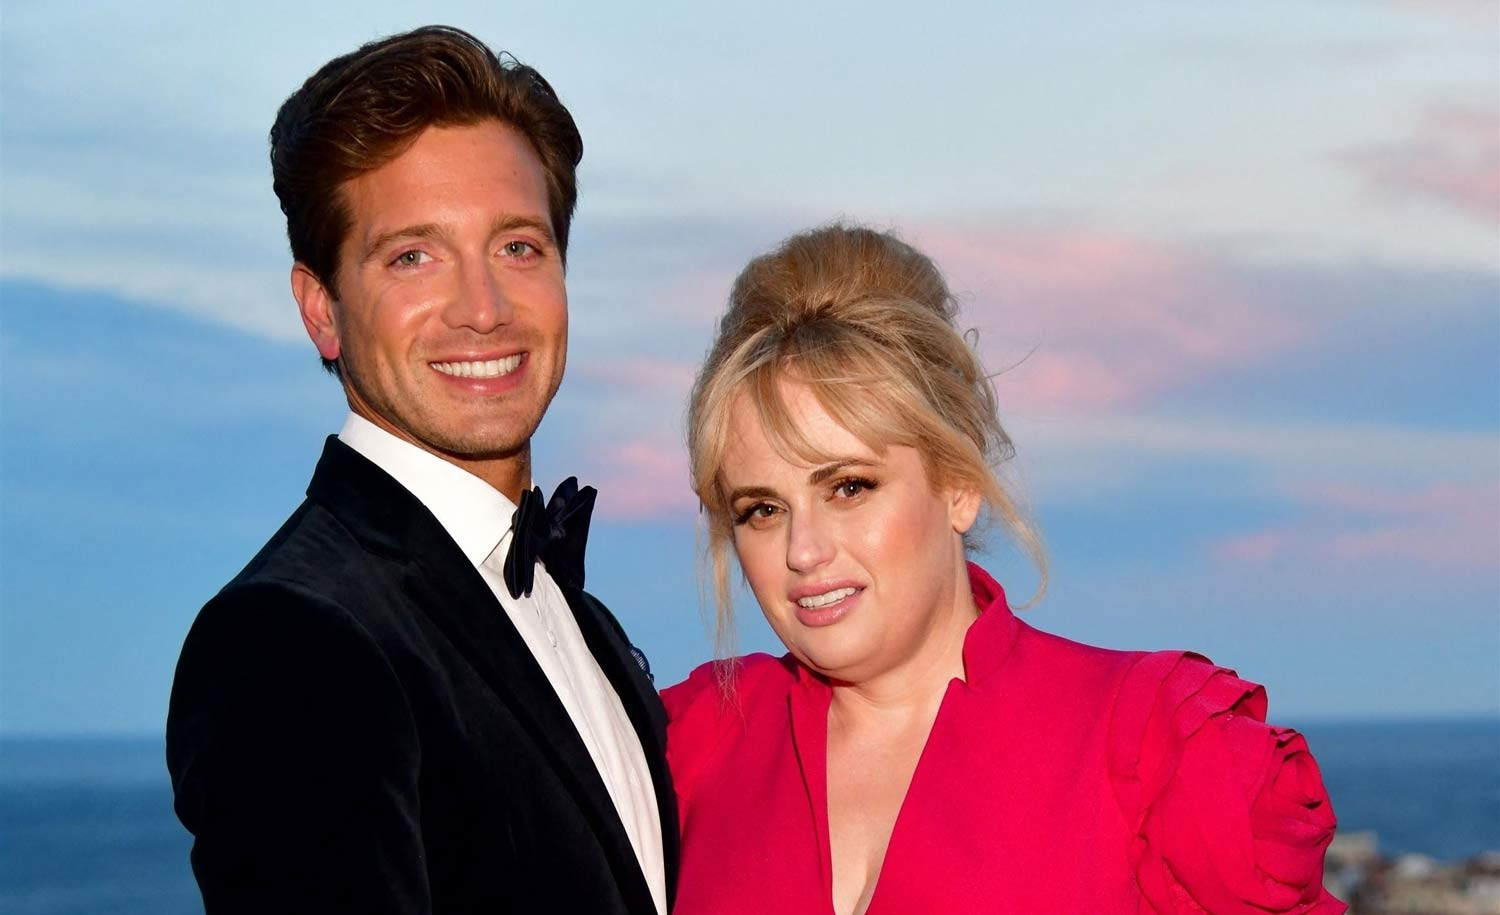 Rebel Wilson And Her BF Jacob Busch Pack The PDA In Cute Beach Video – Check Out Her Stunning Strapless Bathing Suit!